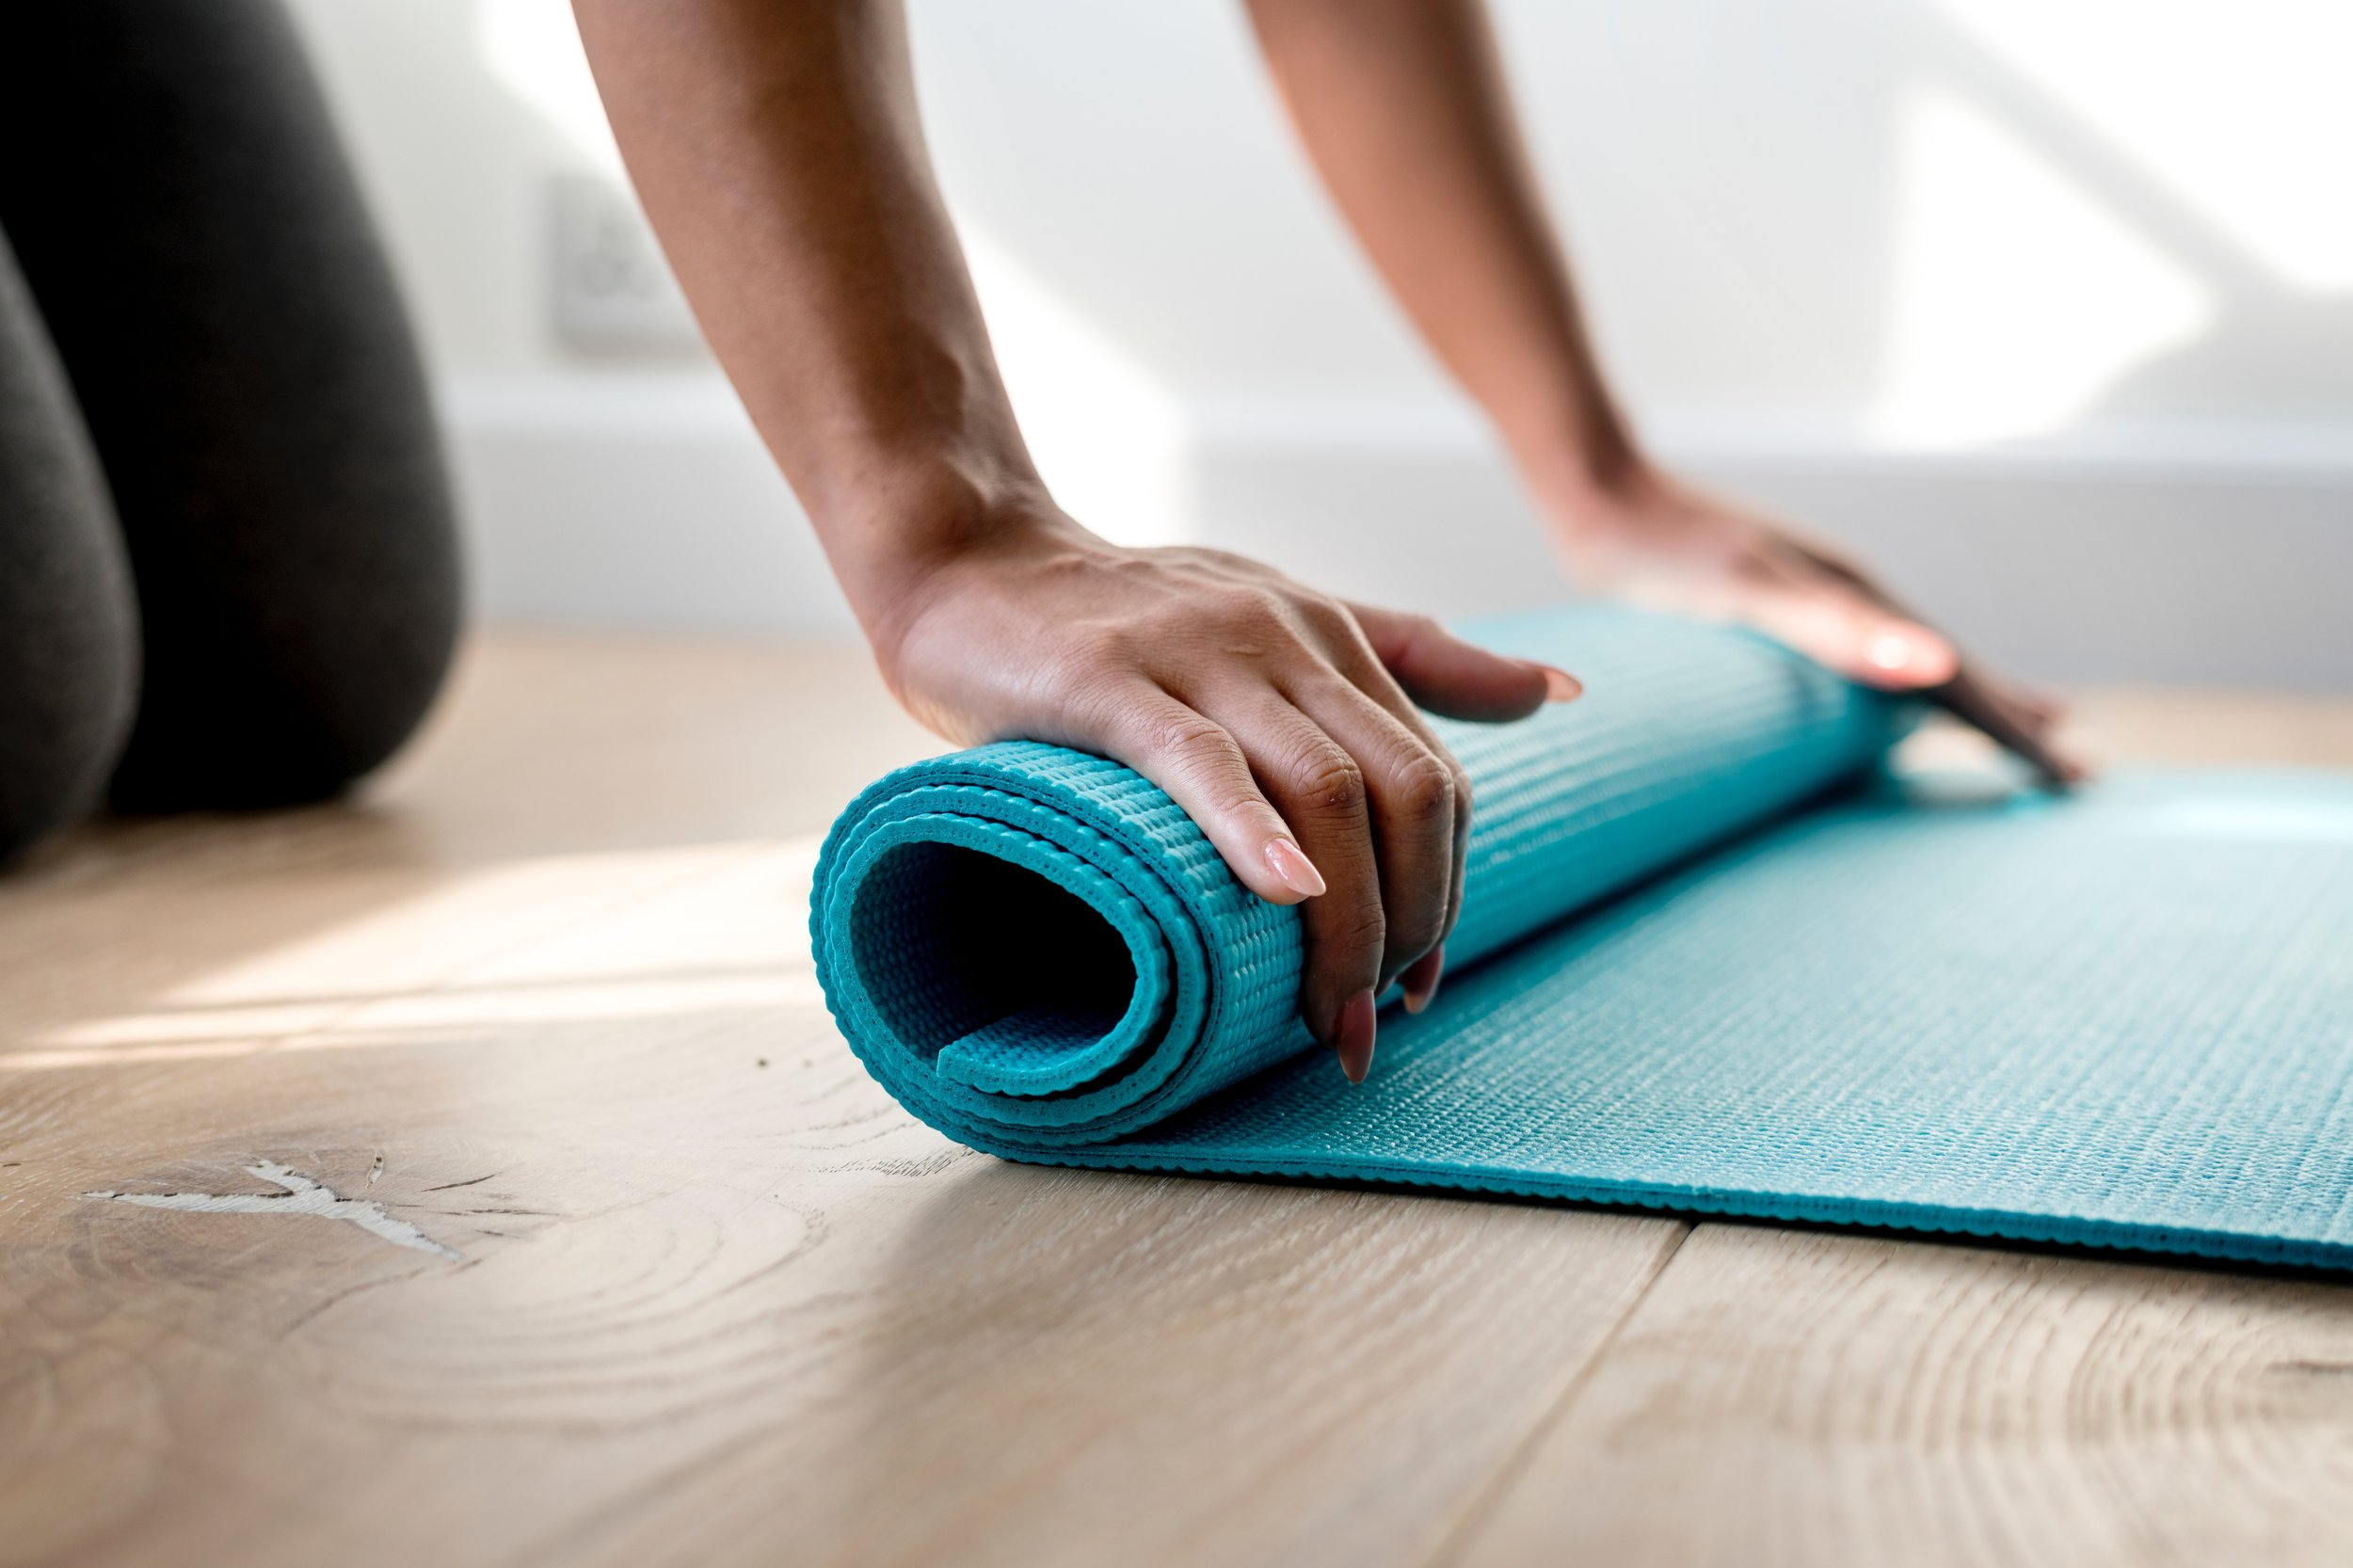 Yin Yoga - Yin is a therapeutic style of yoga that is meditative, slow paced, and helping to balance an active lifestyle. Stretches are held longer and deeper, enhancing flexibility and joint mobility whilst encouraging healing and realigning the body's connective tissues.